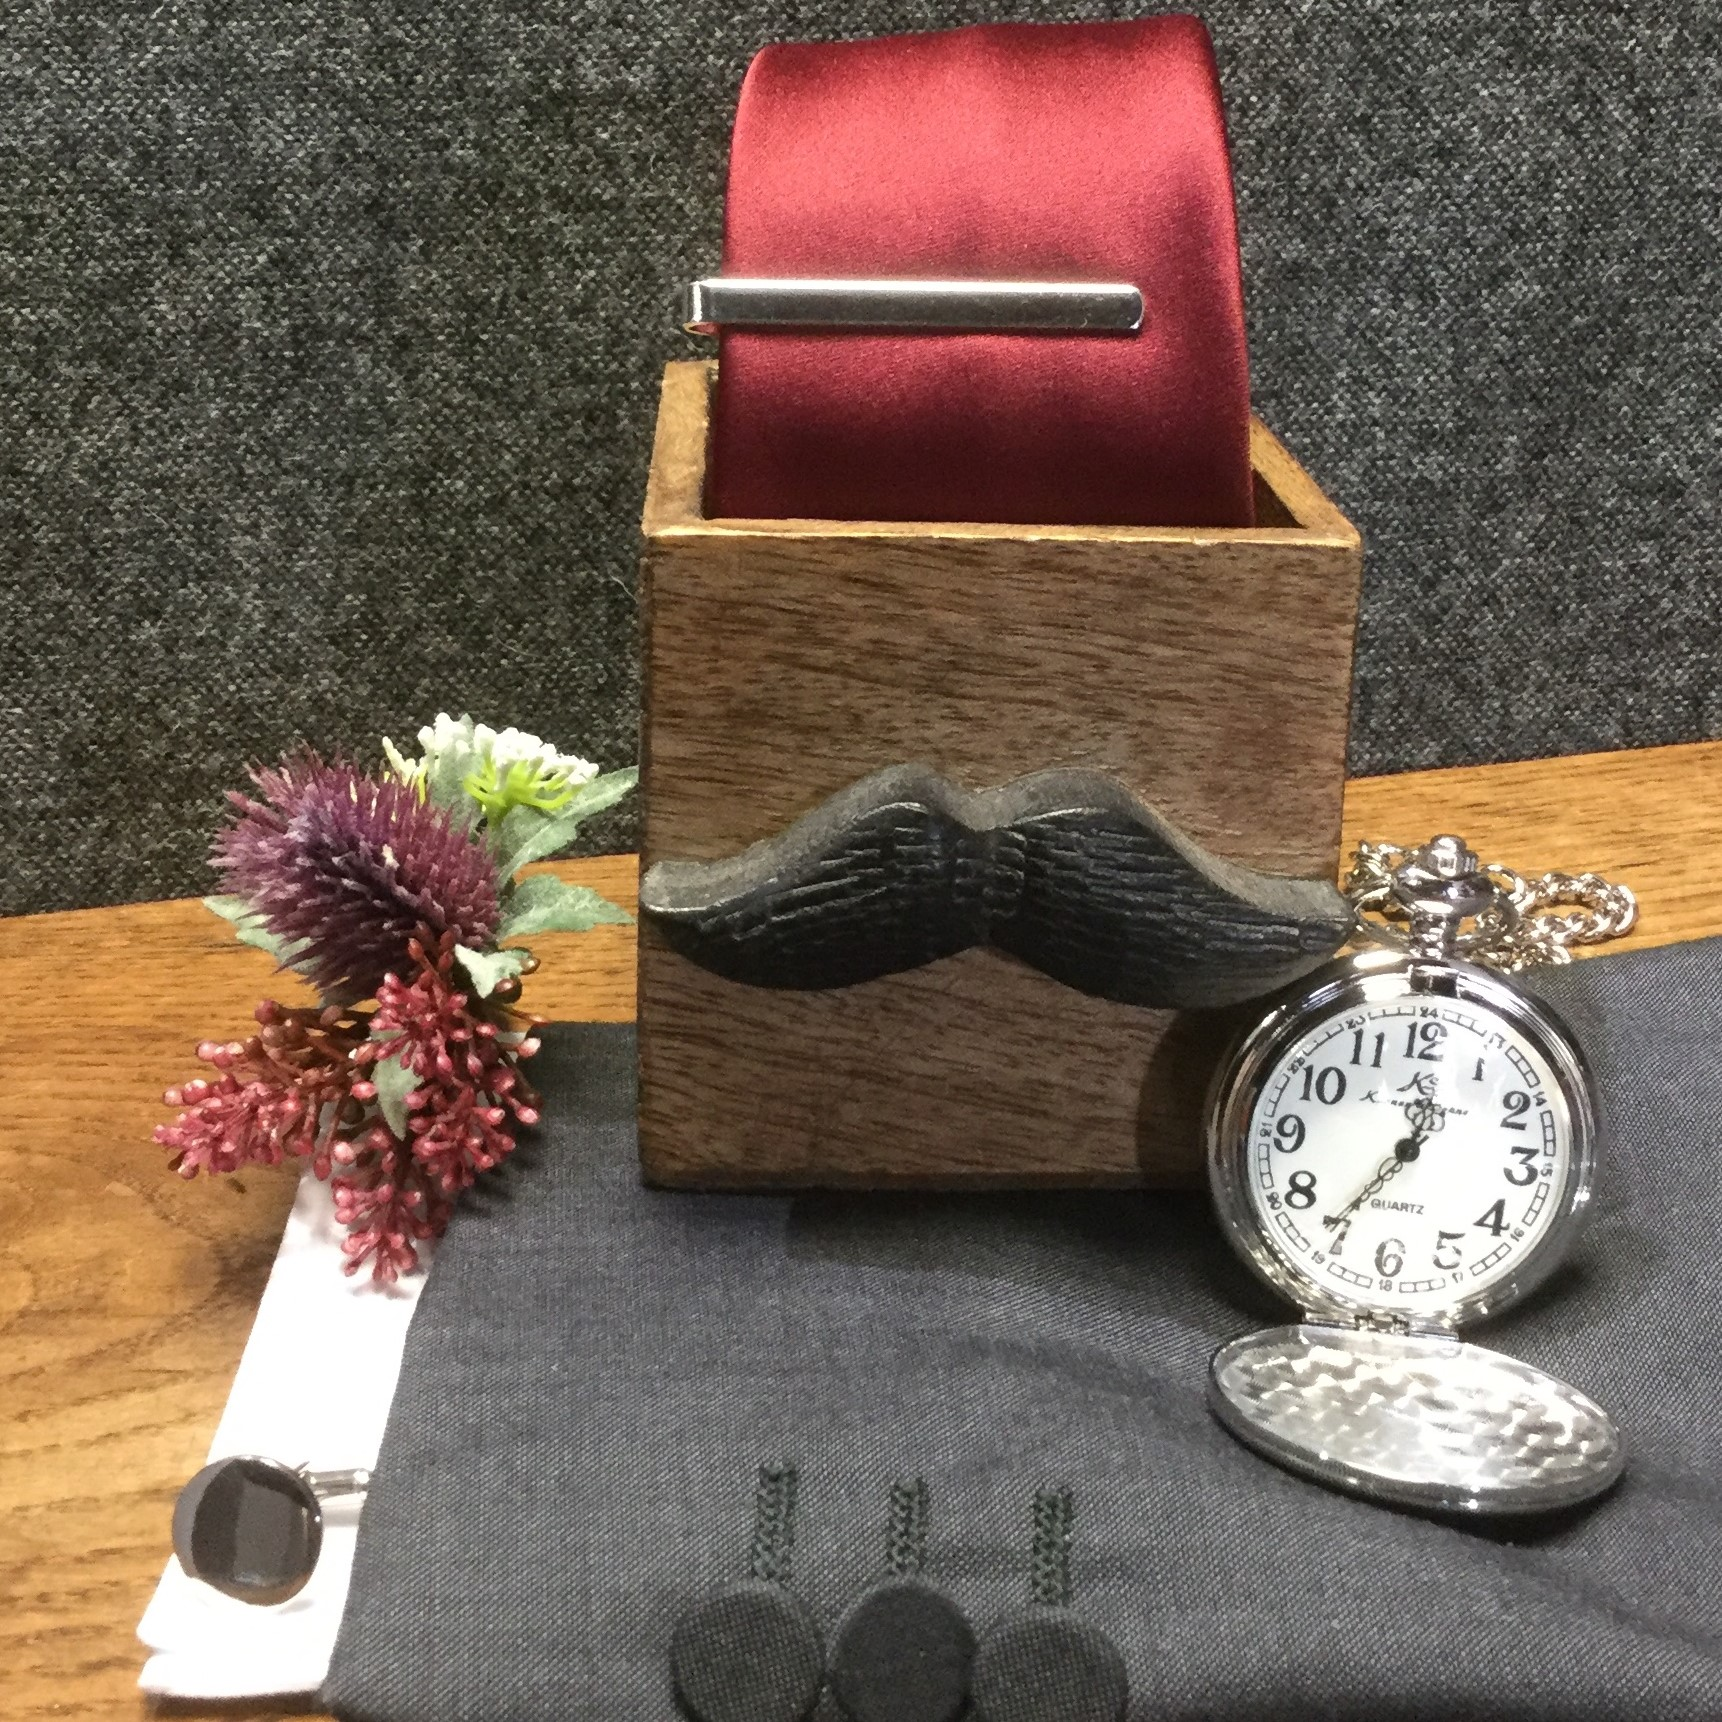 Silver Pocketwatch with a silver tie bar and silver cufflinks and charcoal wedding suit